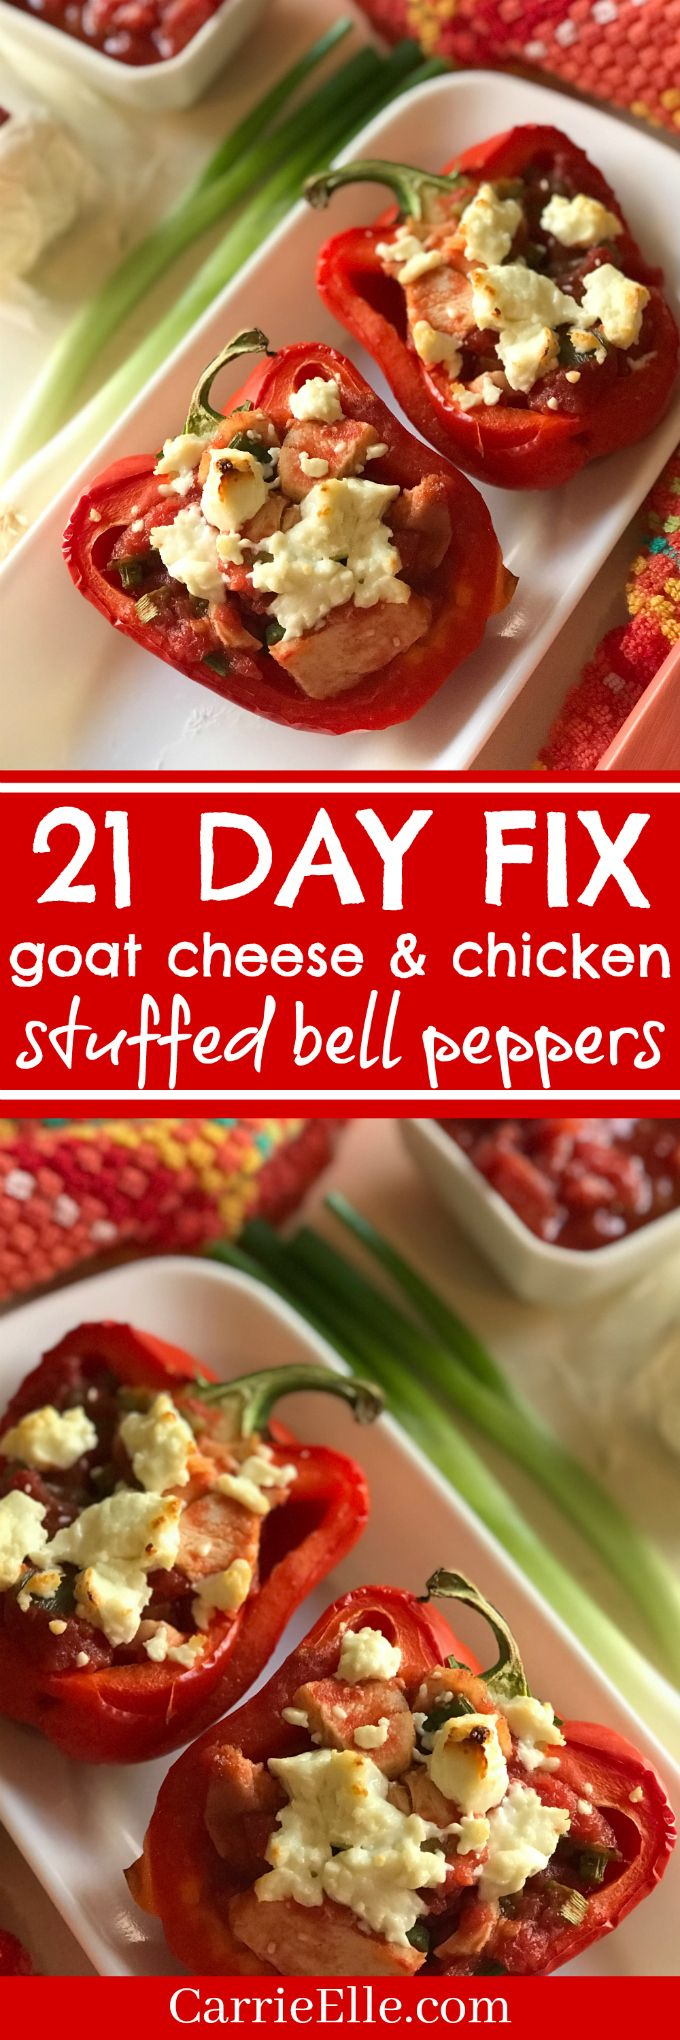 21 Day Fix Stuffed Bell Peppers with Chicken and Goat Cheese (great way to use leftover or rotisserie chicken!)